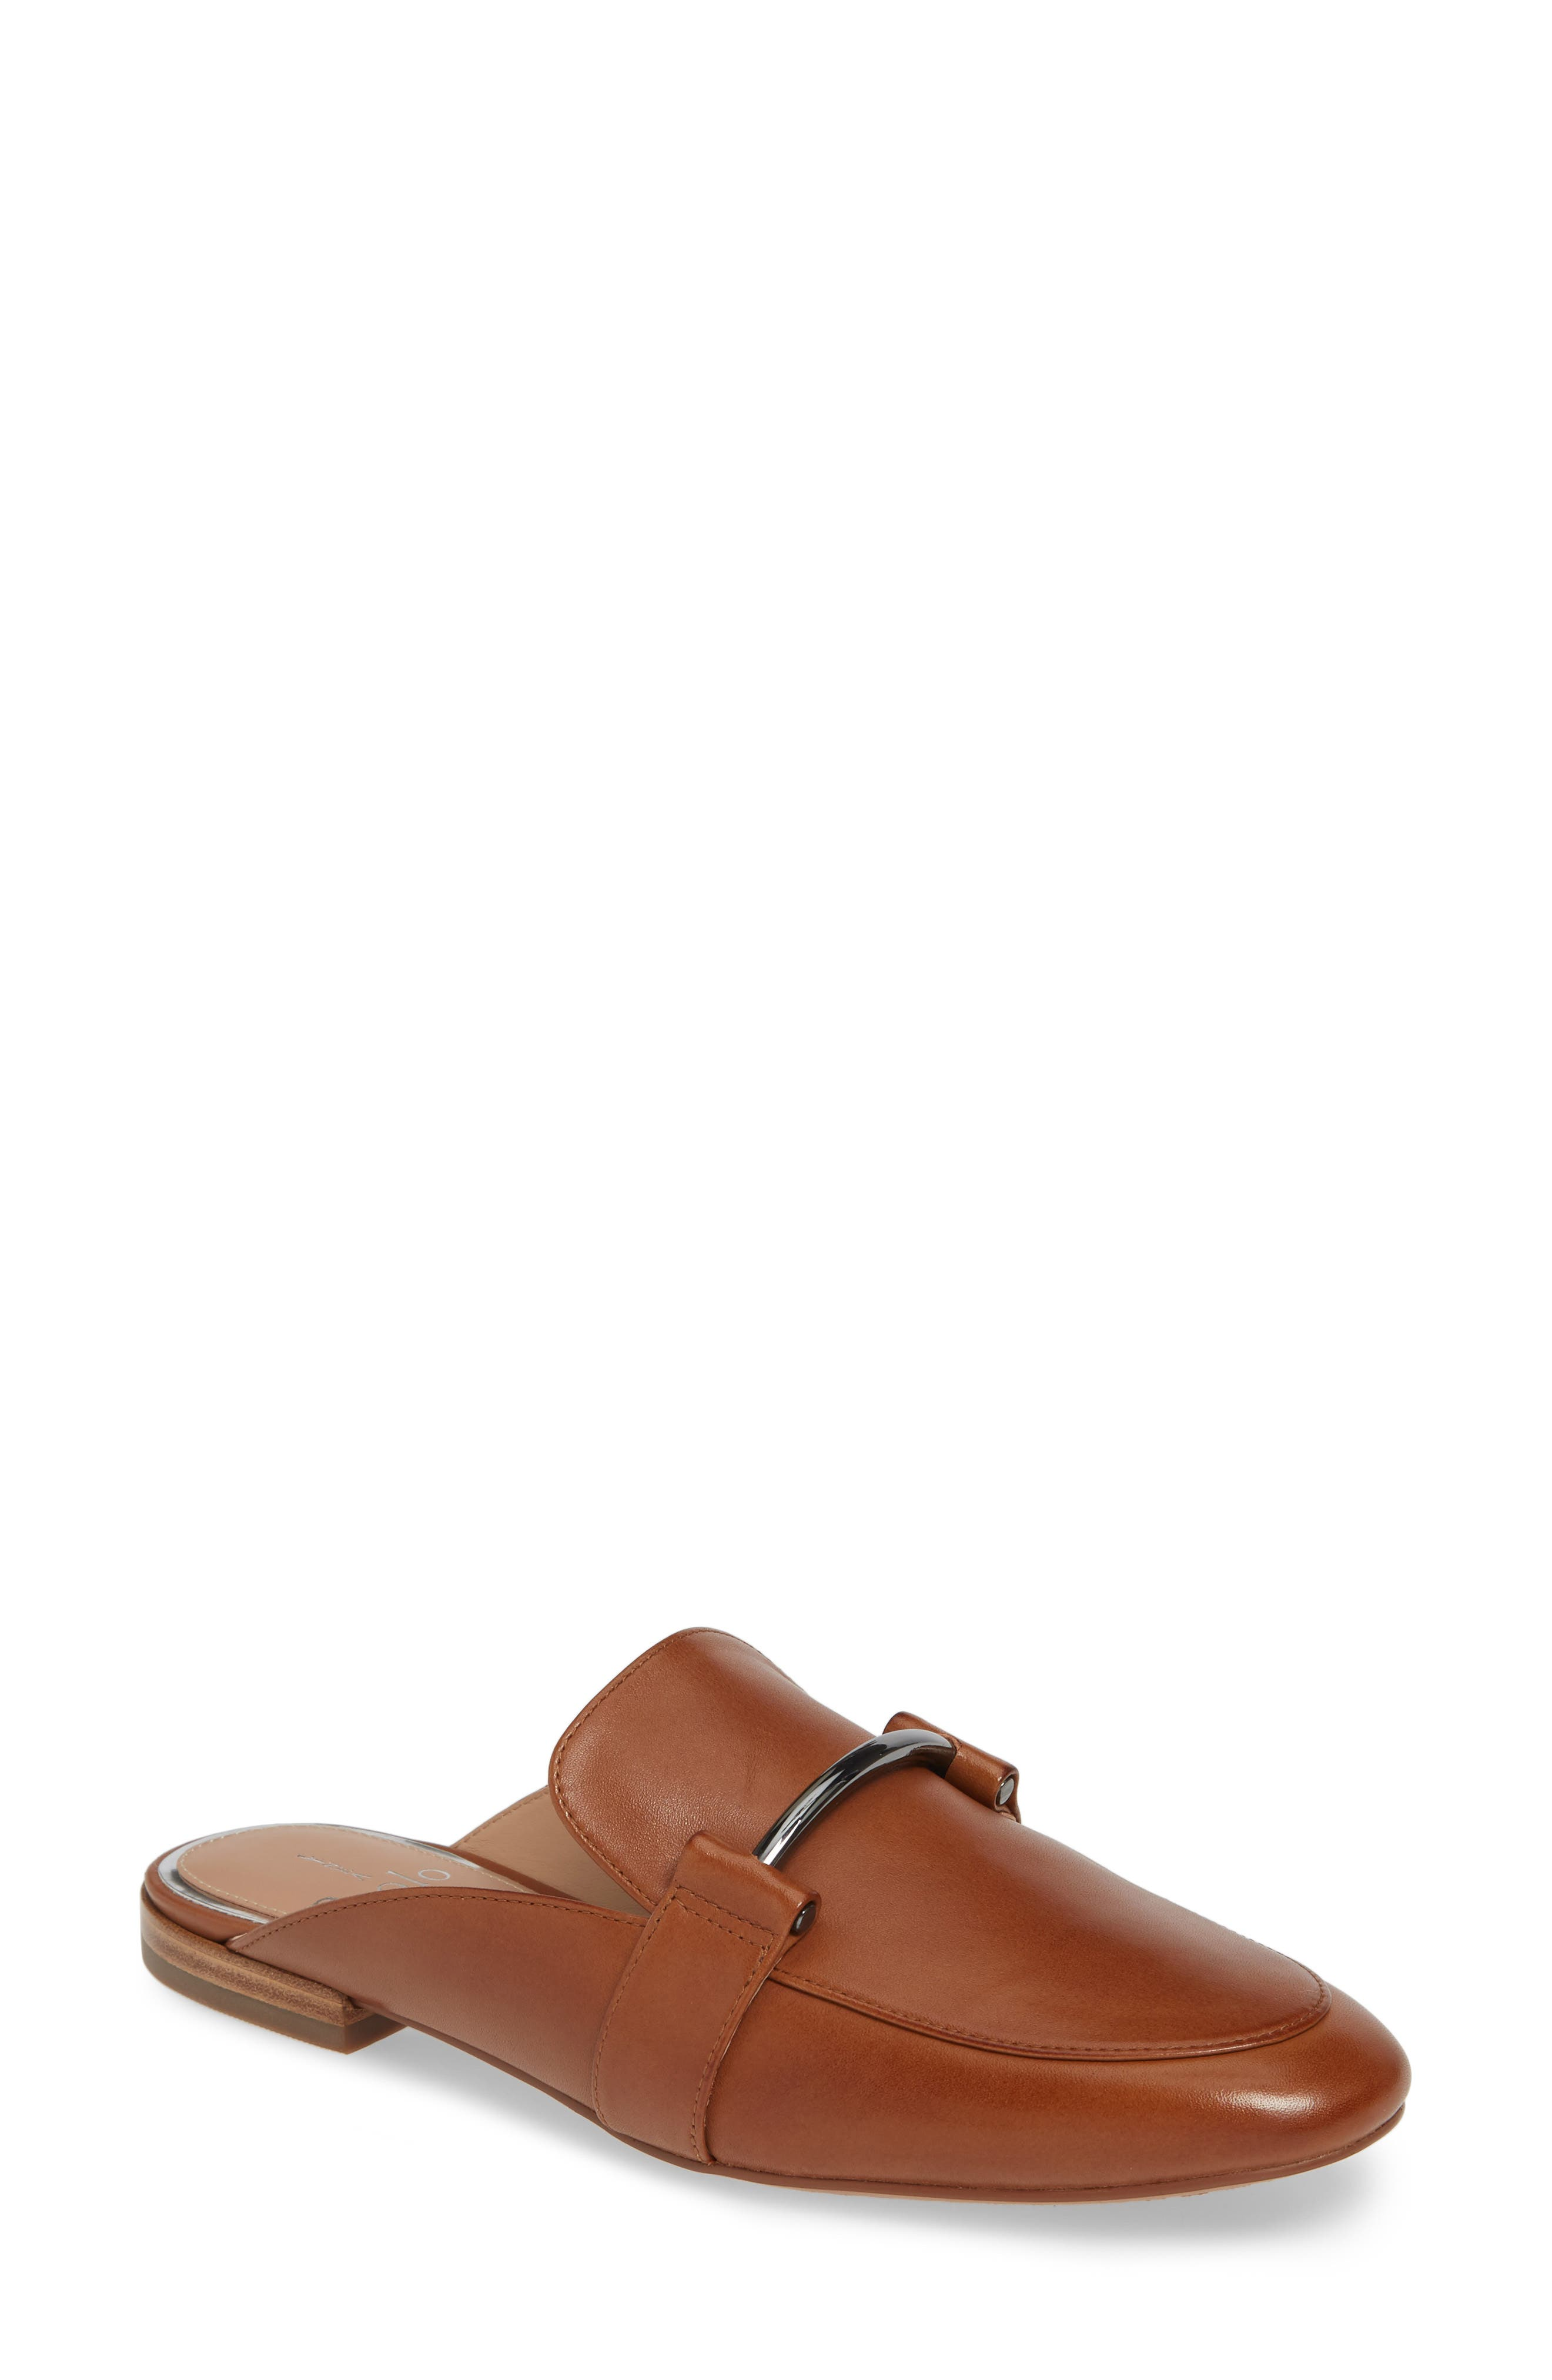 Linea Paolo Annette Loafer Mule, Brown